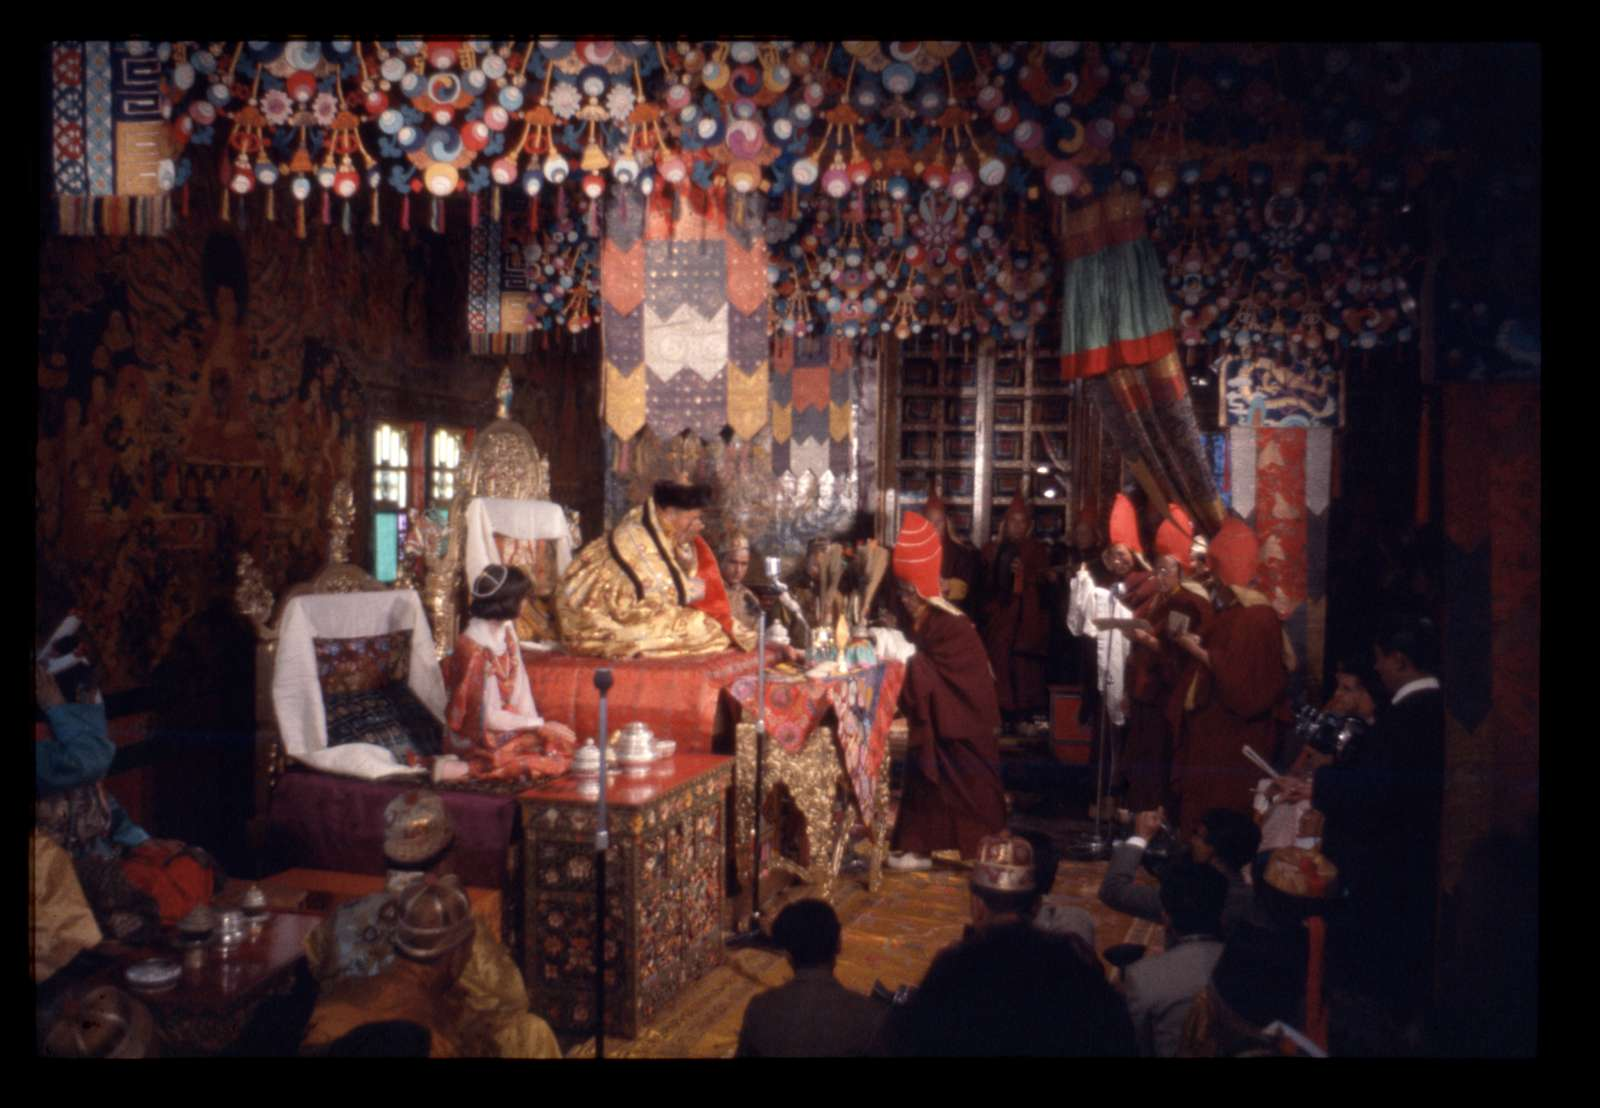 [Coronation ceremony of Palden Thondup Namgyal and Hope Cooke, Gangtok, Sikkim]